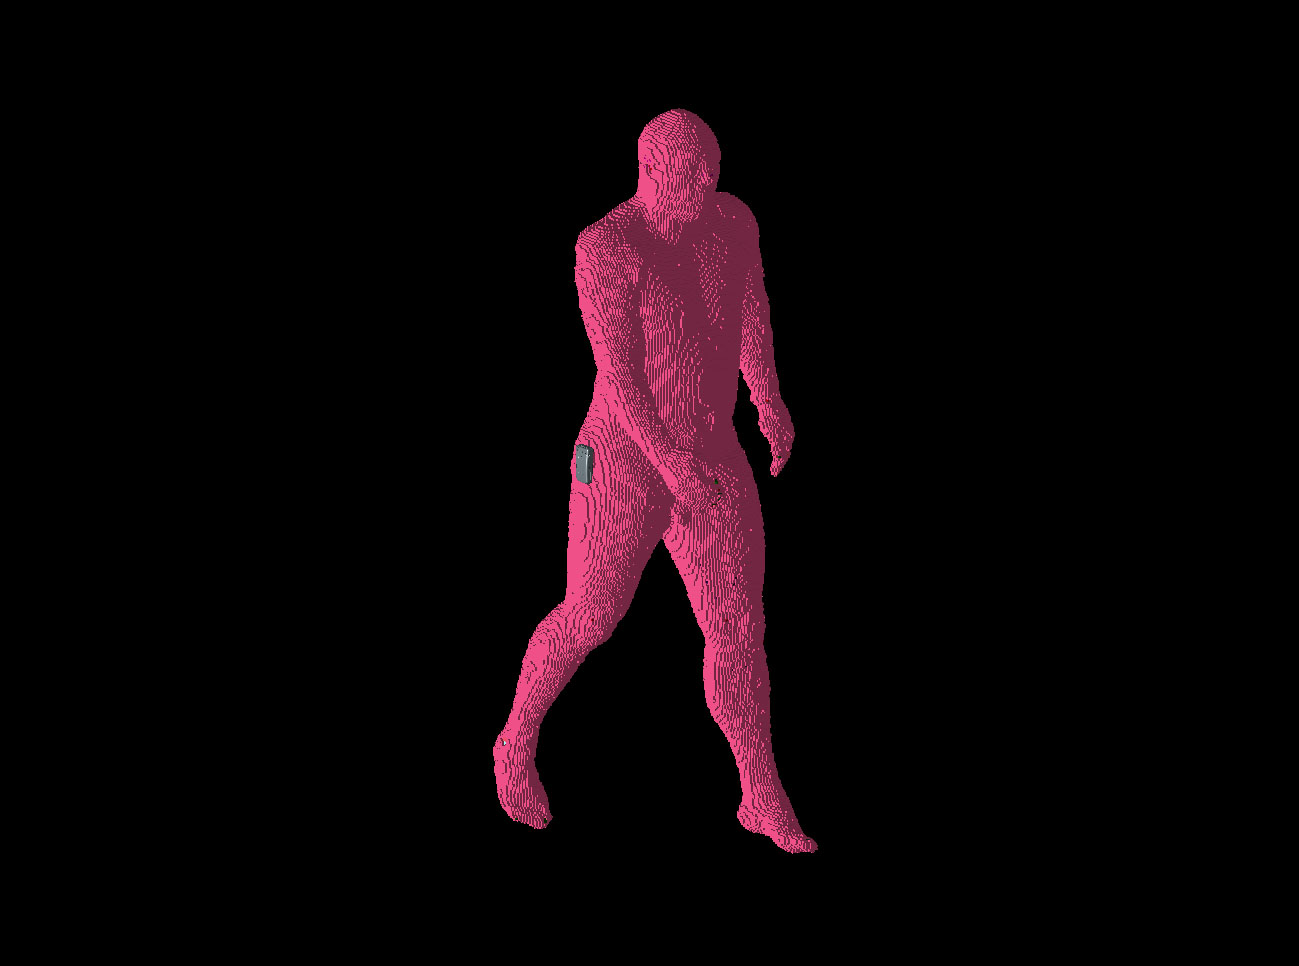 Figure 2: Position 1 of the walking man is shown with the left foot forward and the right arm forward of the phone location.